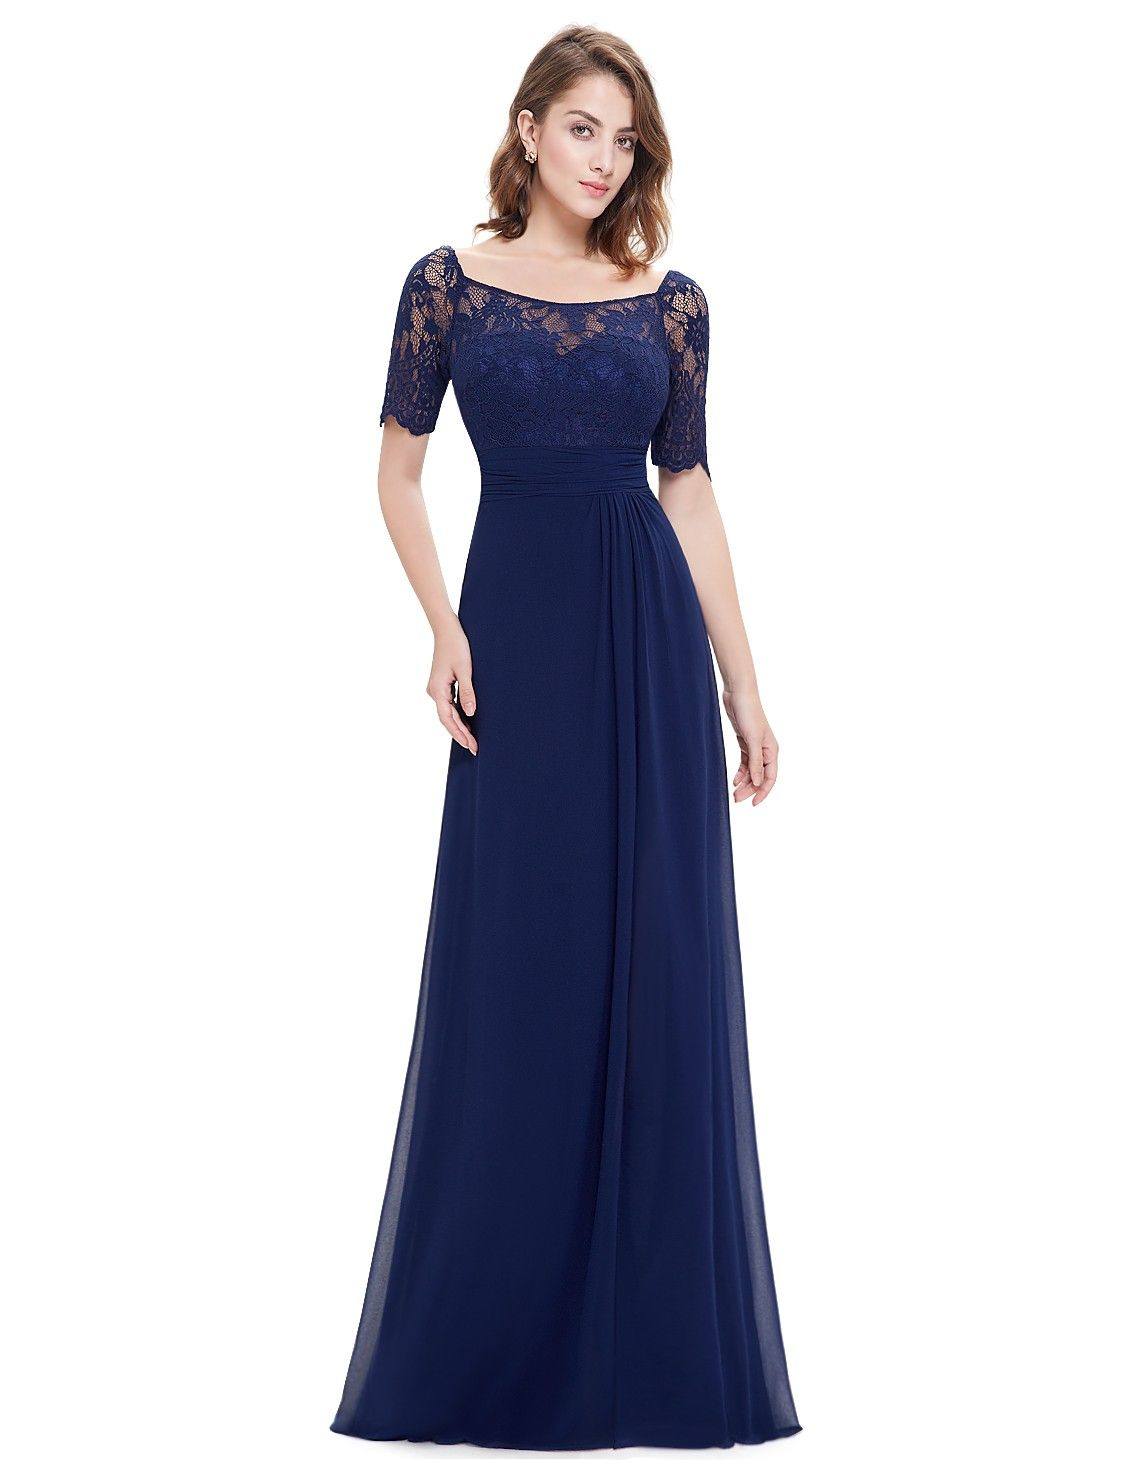 Half Sleeve Empire Waist Evening Dress with Lace Bodice  a8d6f5eb092c